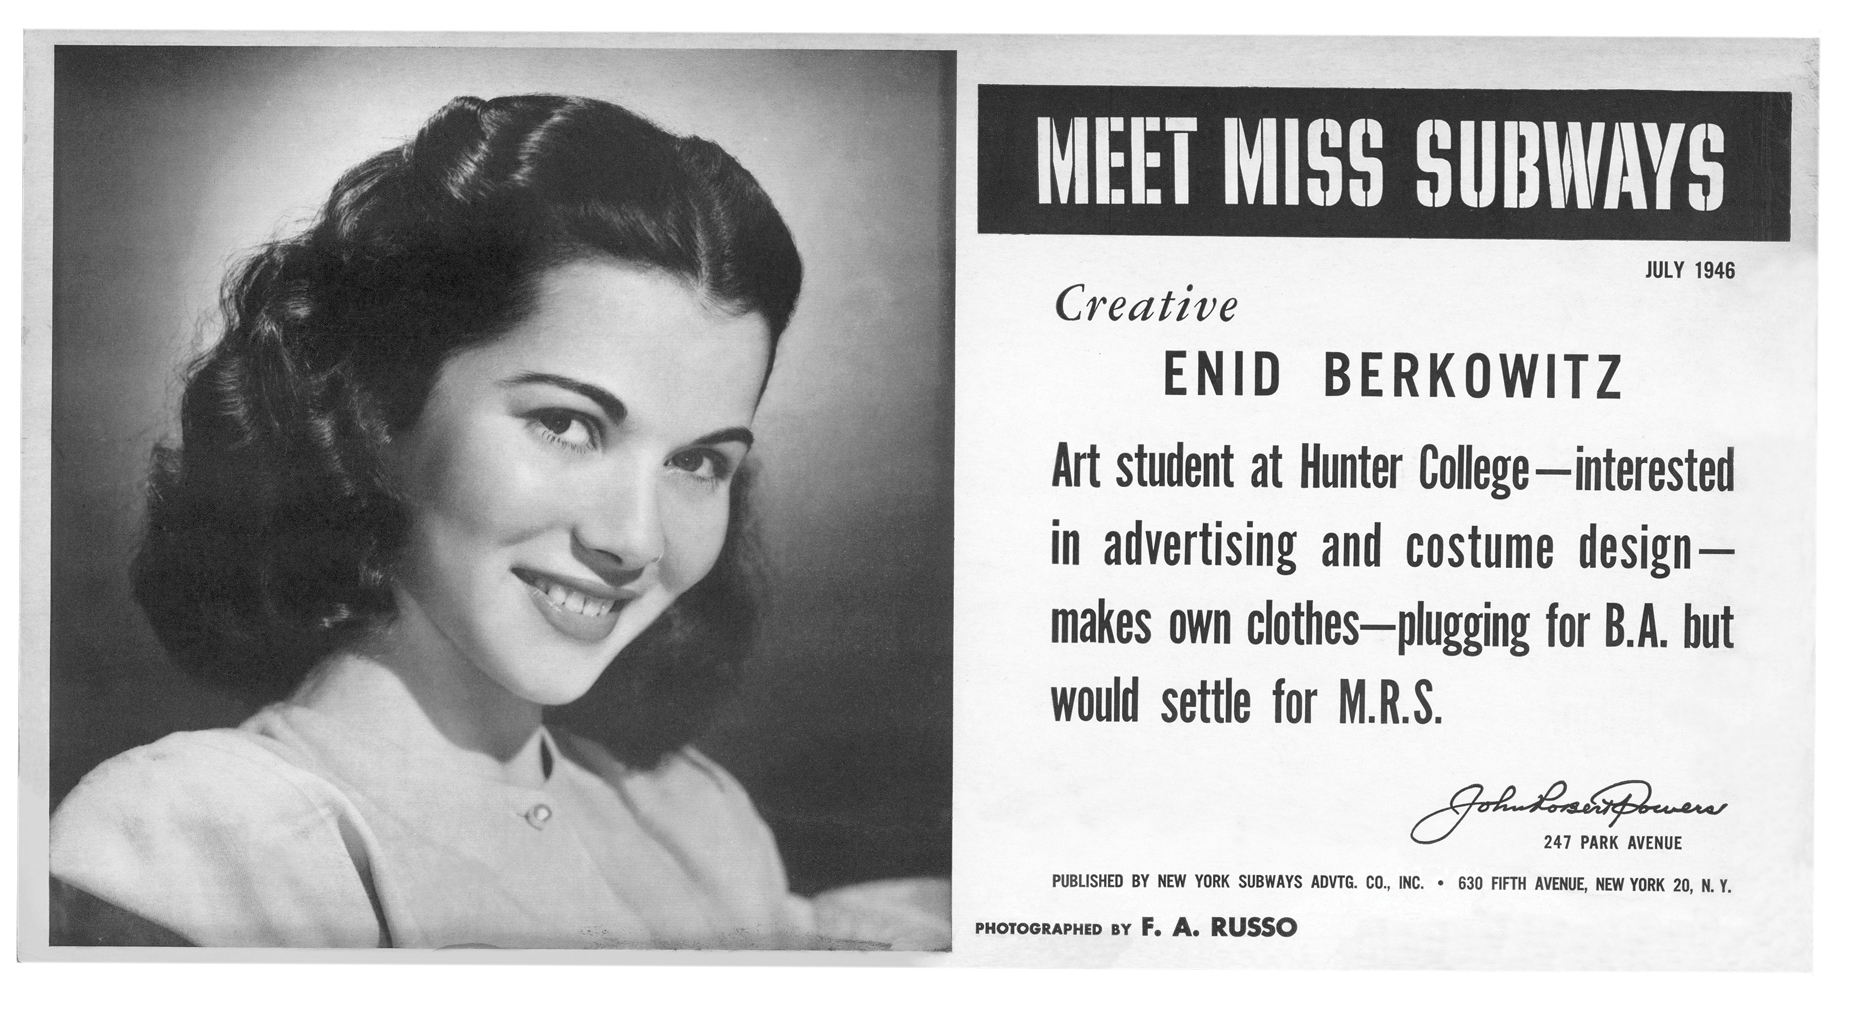 Enid Berkowitz, now in her 80s, was Miss Subways in July 1946.